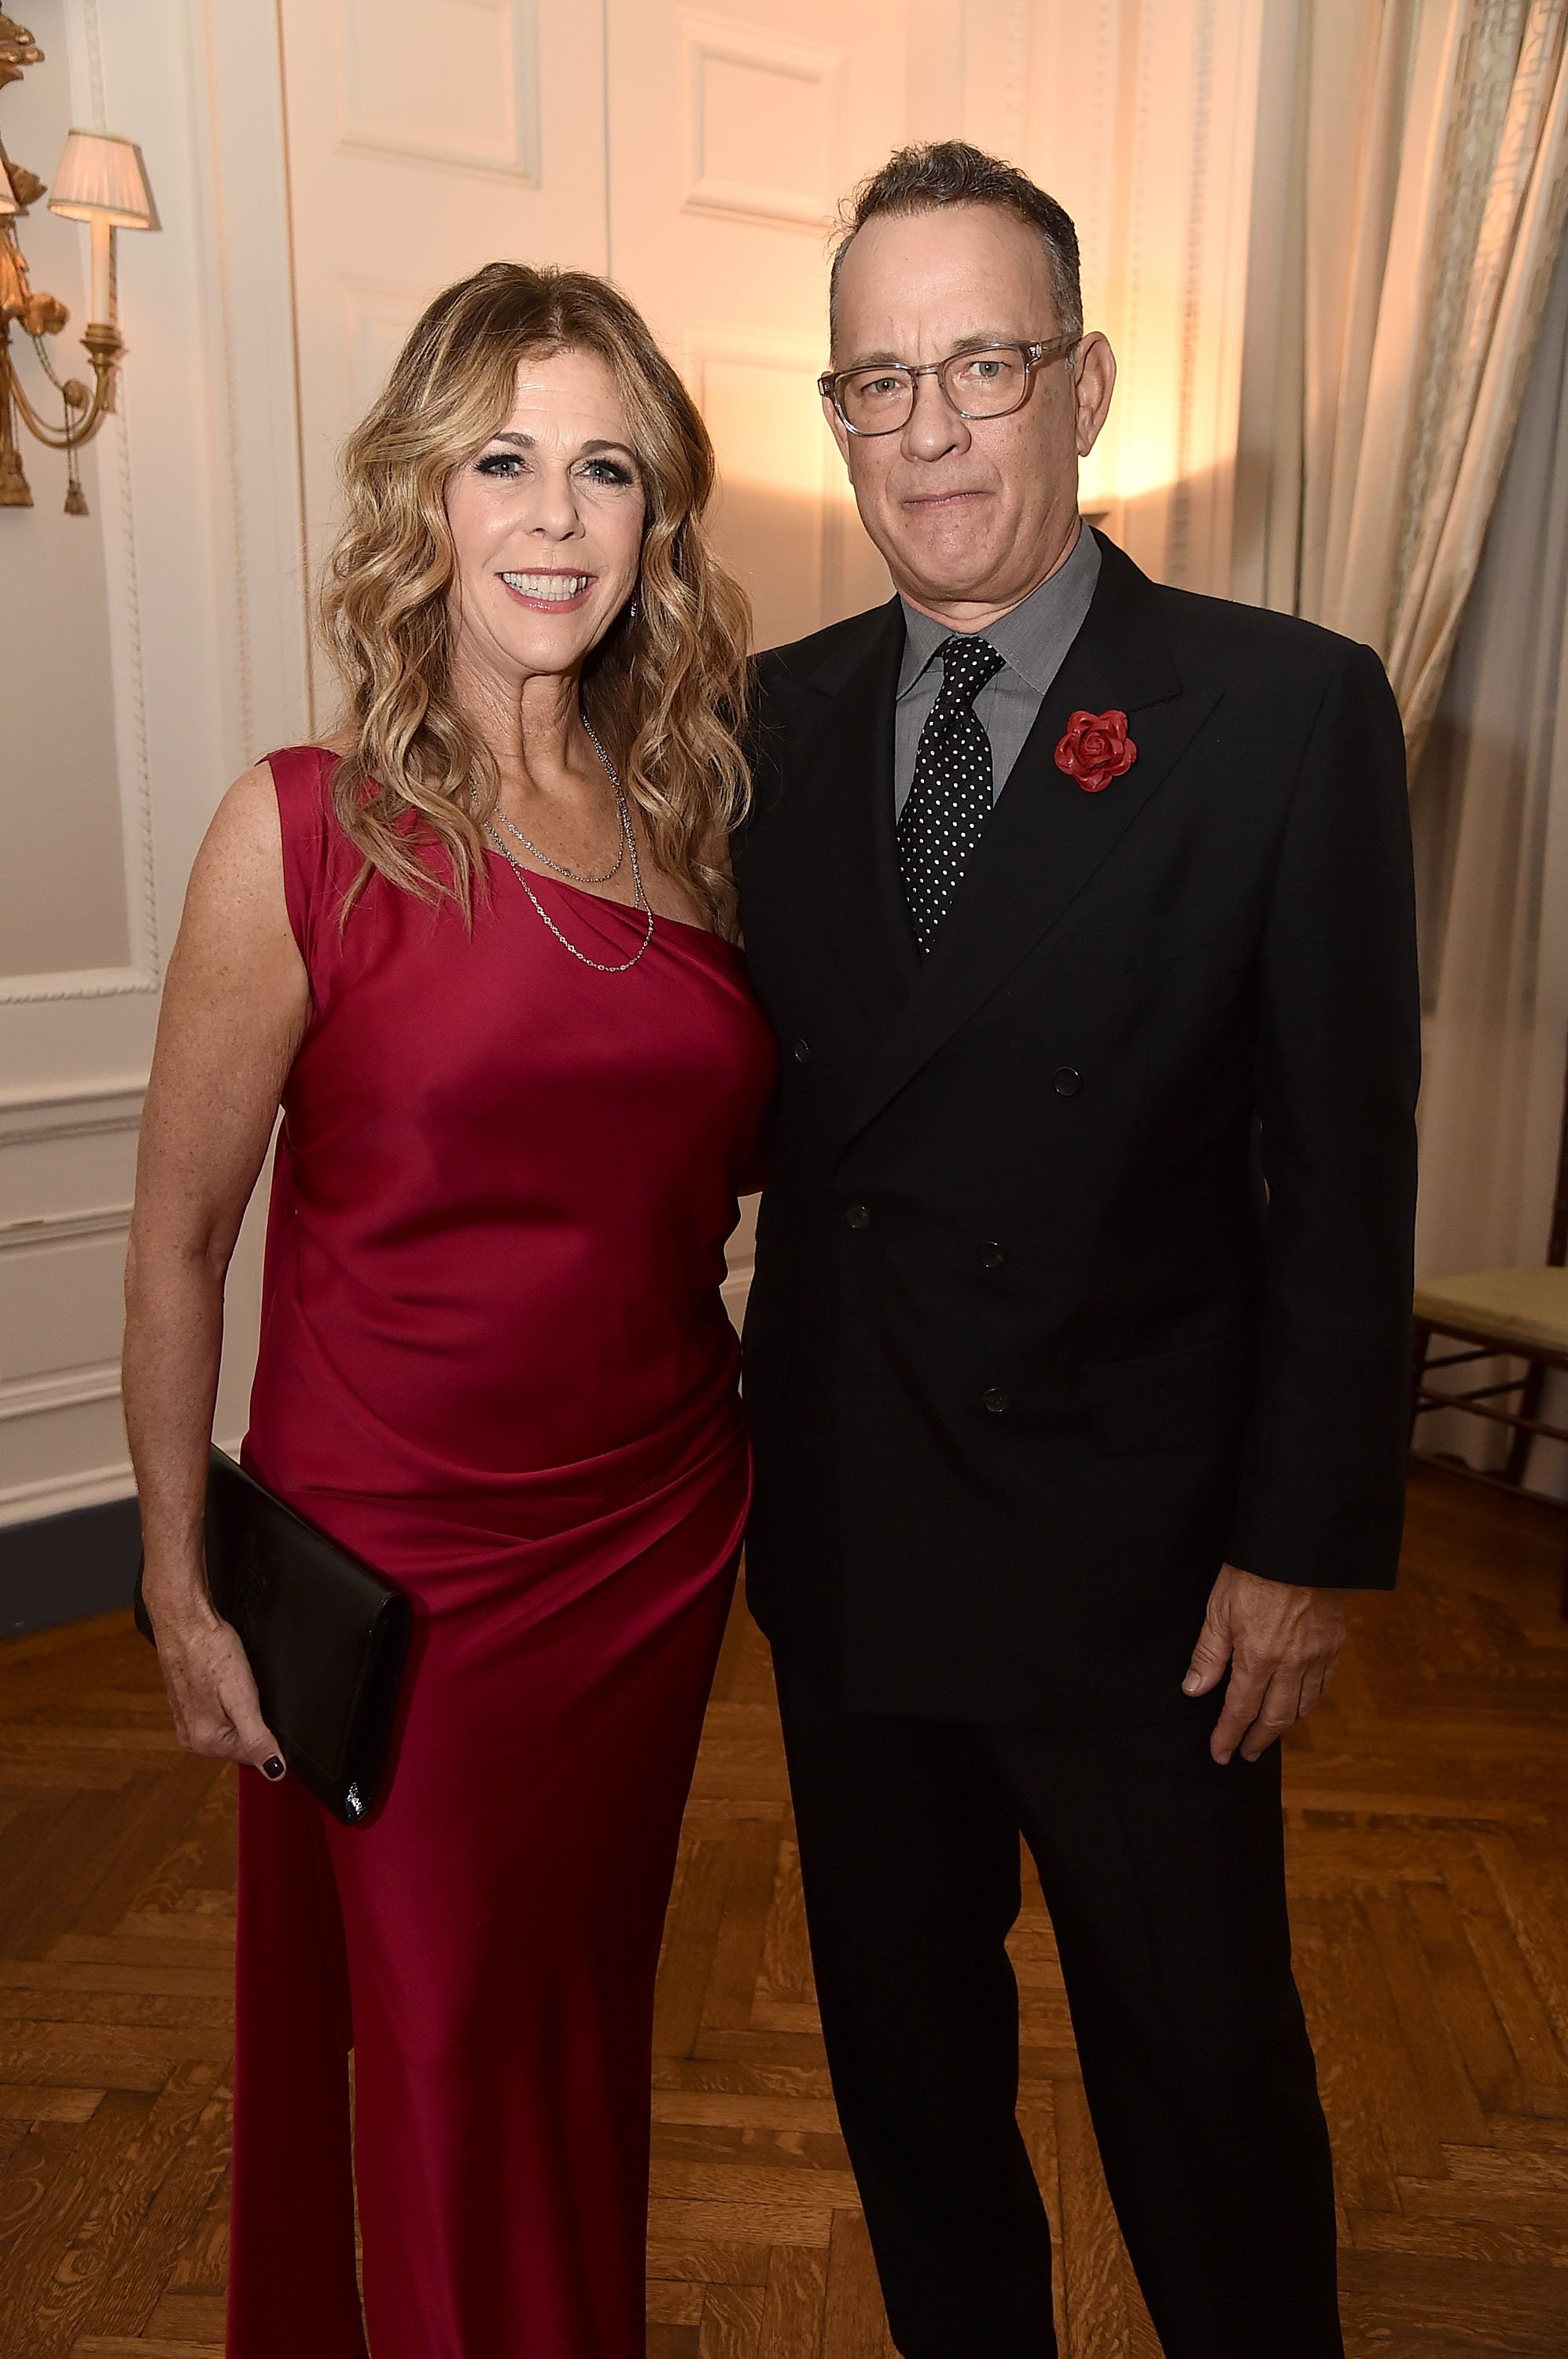 Rita Wilson and Tom Hanks attend the 2018 American Friends of Blerancourt Dinner on November 9, 2018, in New York City. | Source: Getty Images.